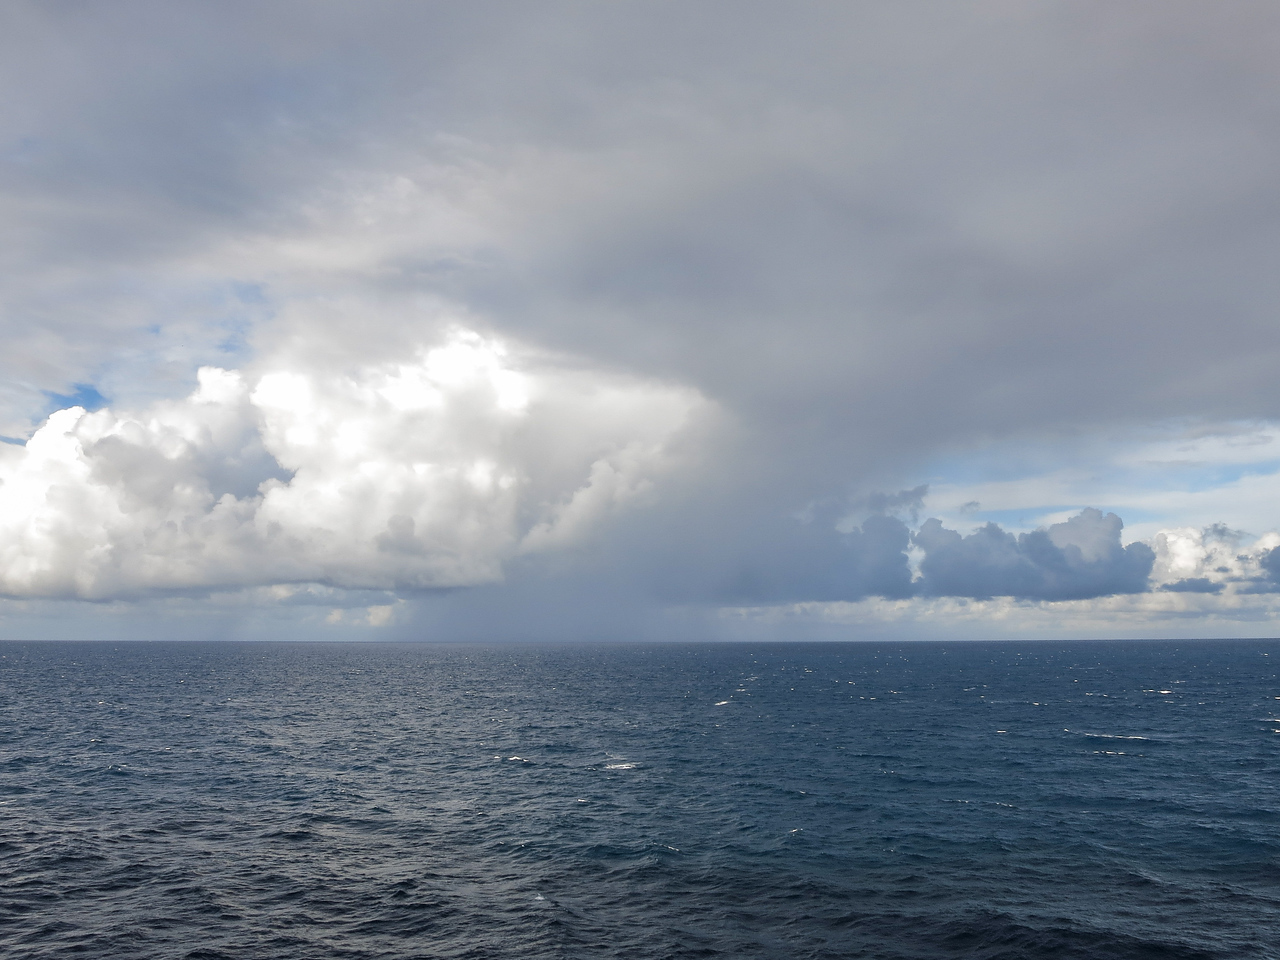 Clouds & Rain @ Sea